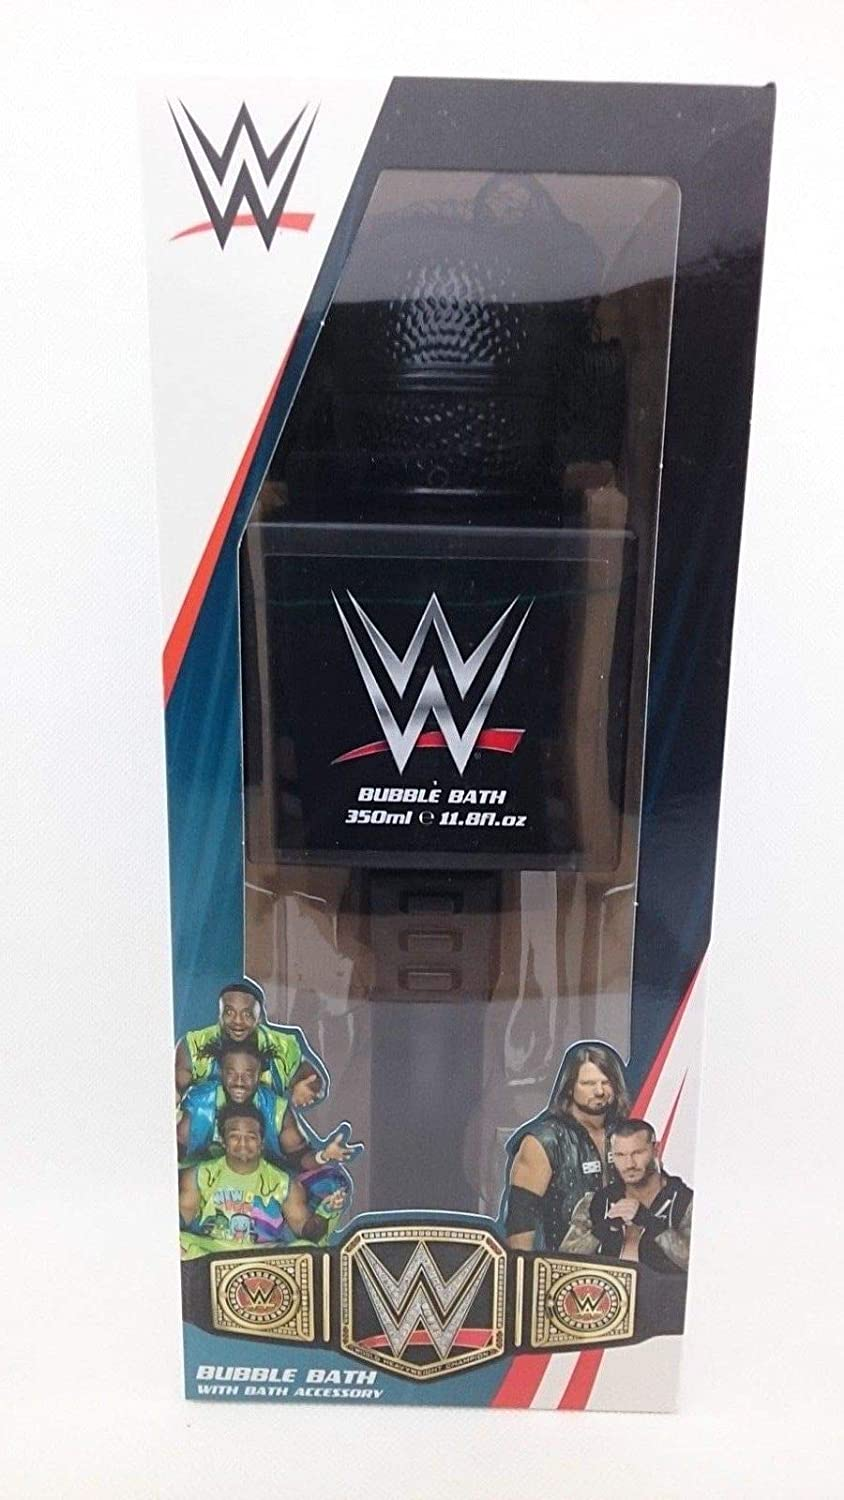 WWE Microphone Bubble Bath with Body Puff Corsair Toiletries Ltd